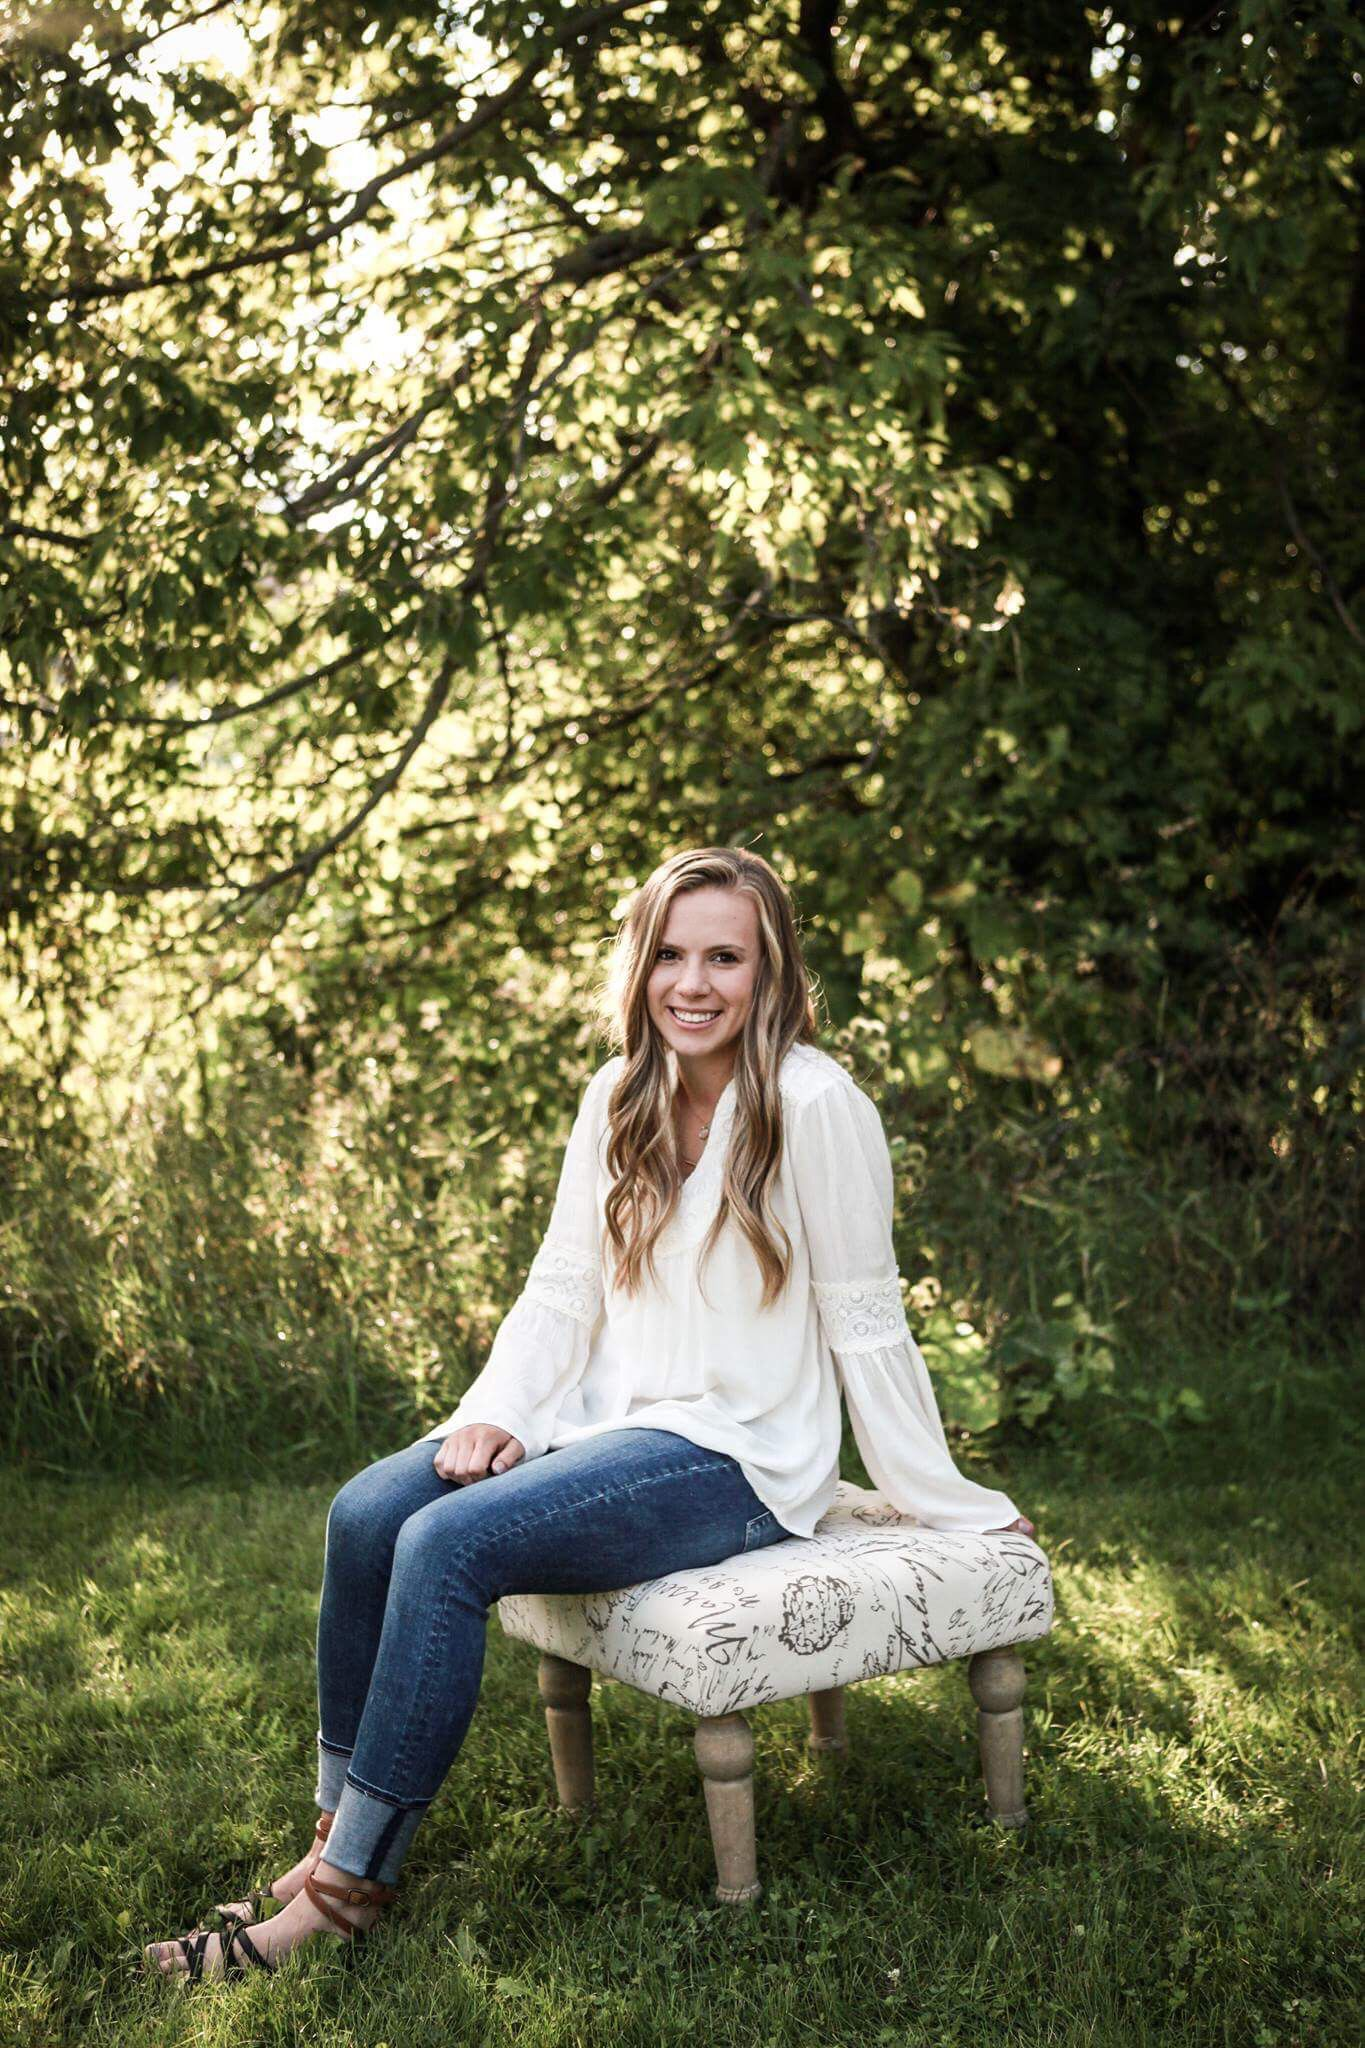 Home Design Ideas For Seniors: Pin By Mandy Conkel On Senior Pics